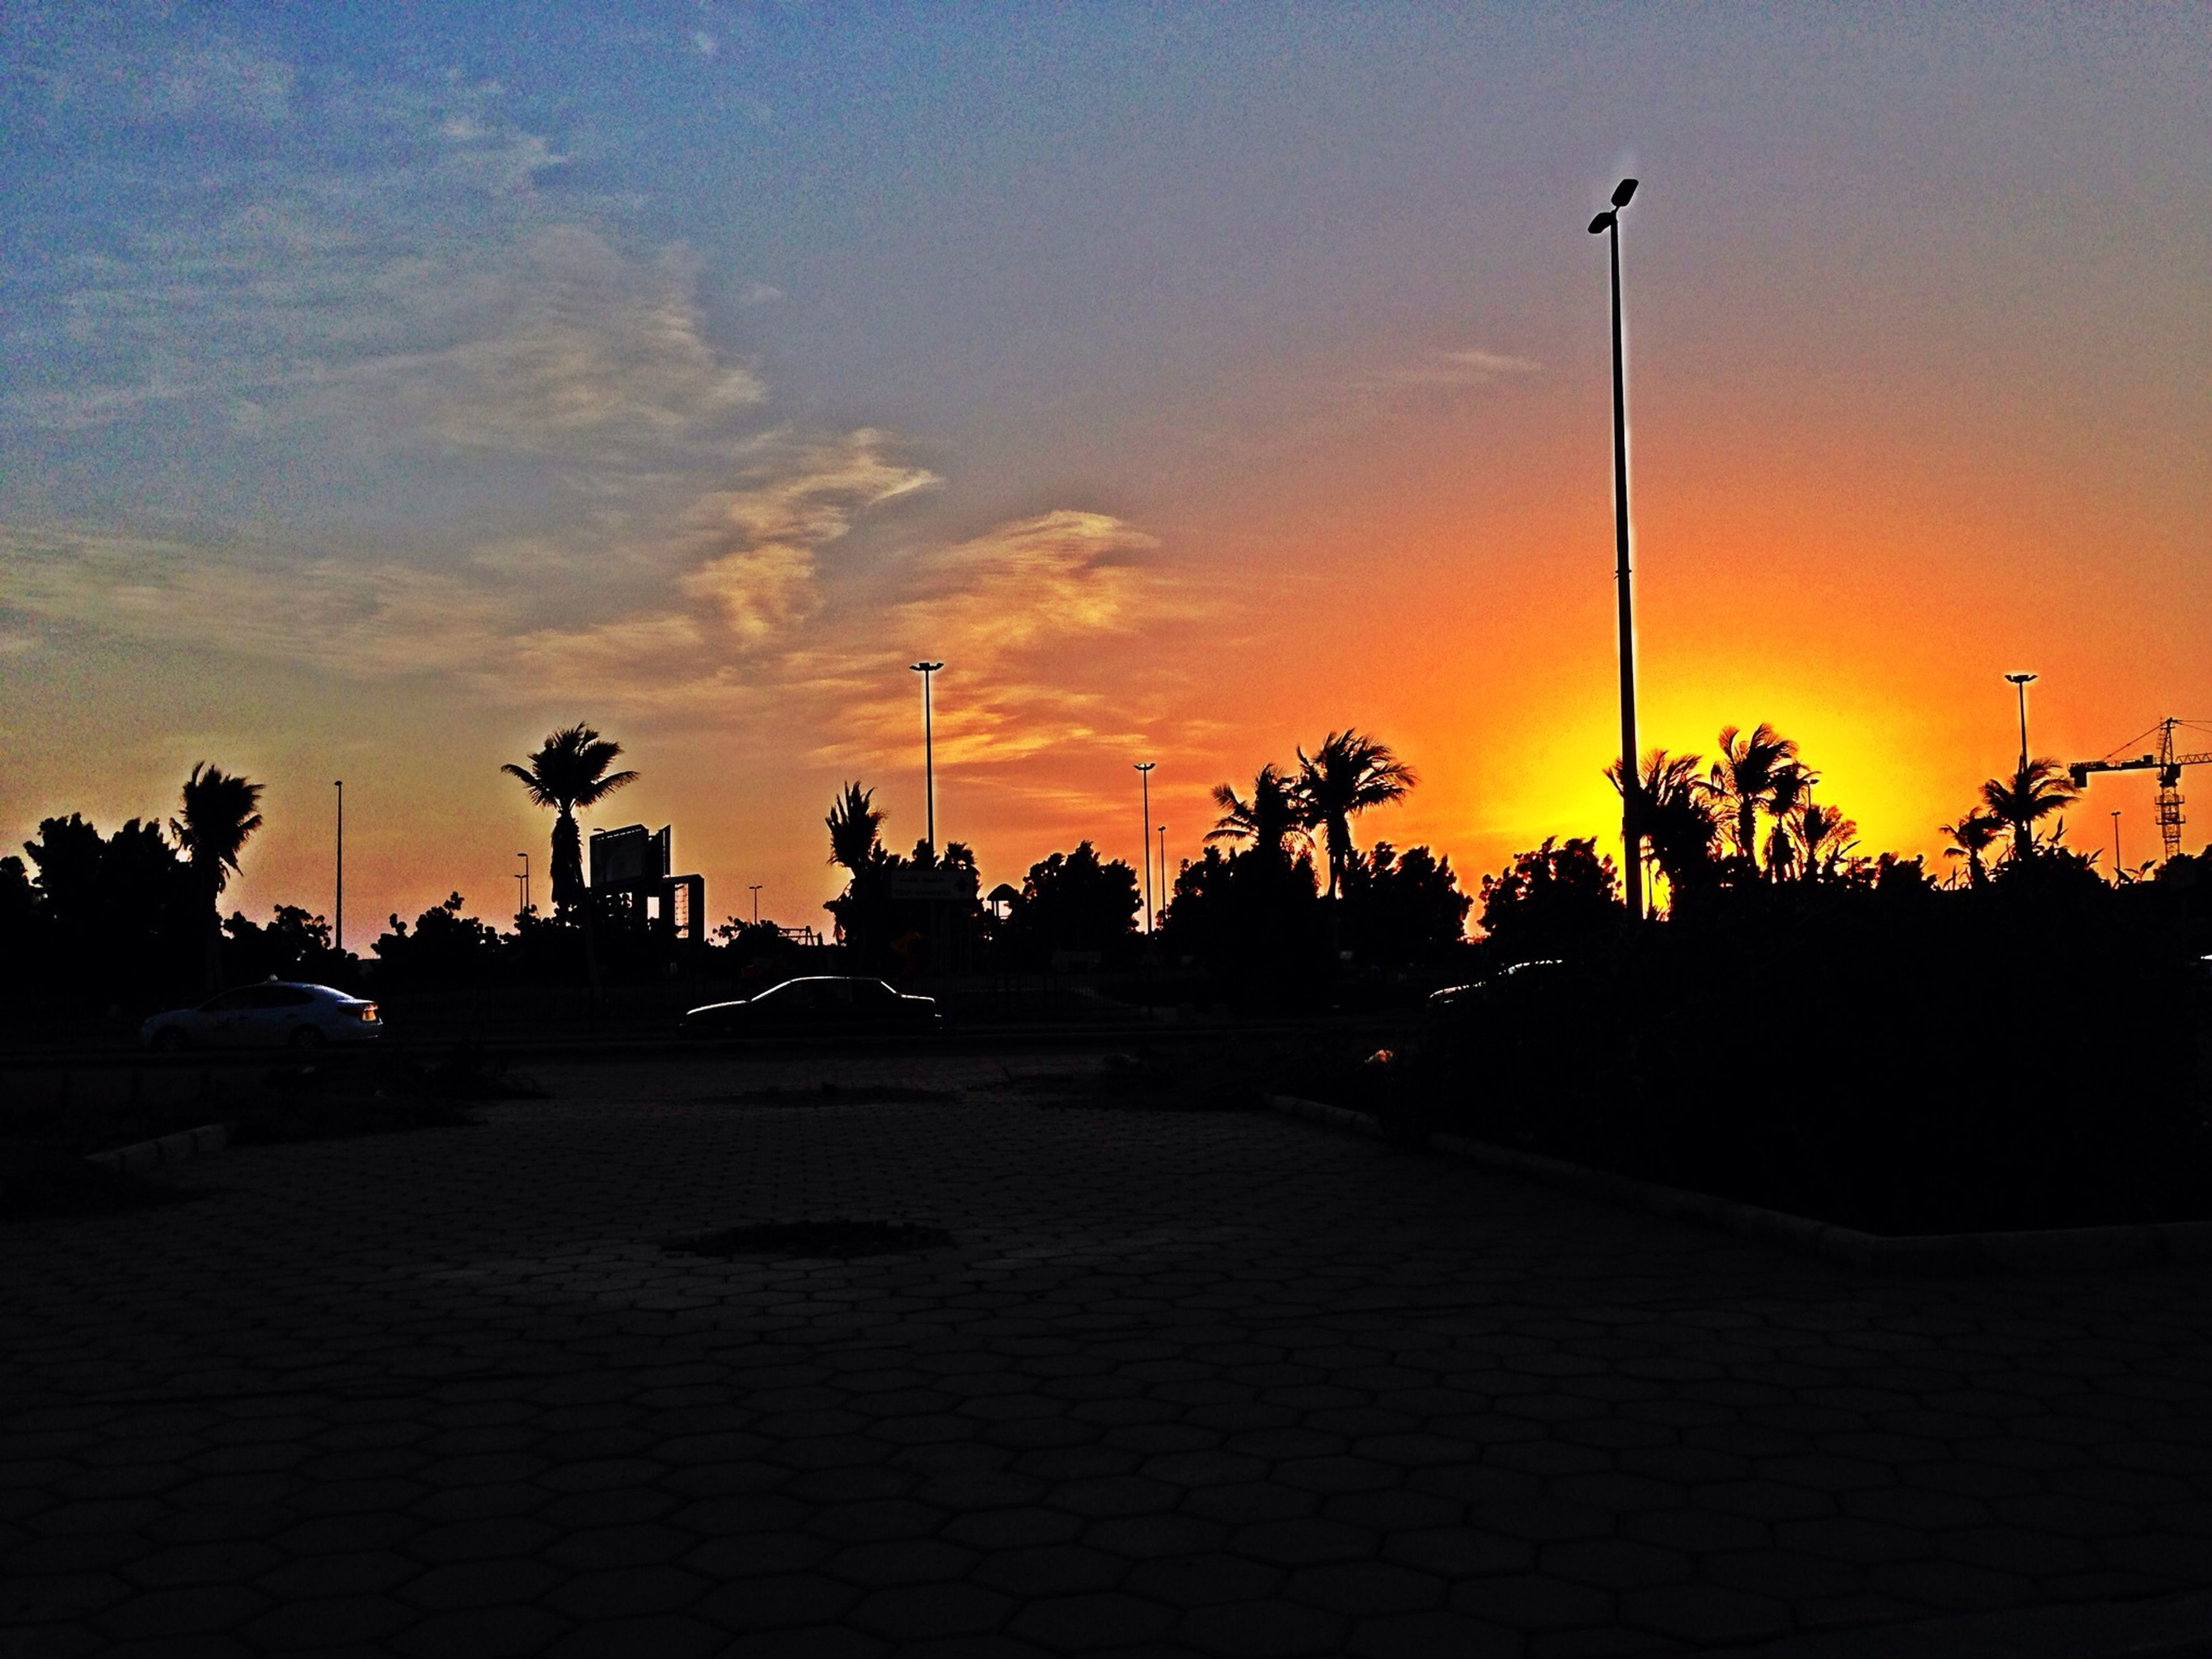 sunset, silhouette, sky, street light, orange color, road, street, the way forward, tree, cloud - sky, transportation, palm tree, dusk, cloud, scenics, beauty in nature, tranquility, tranquil scene, nature, outdoors